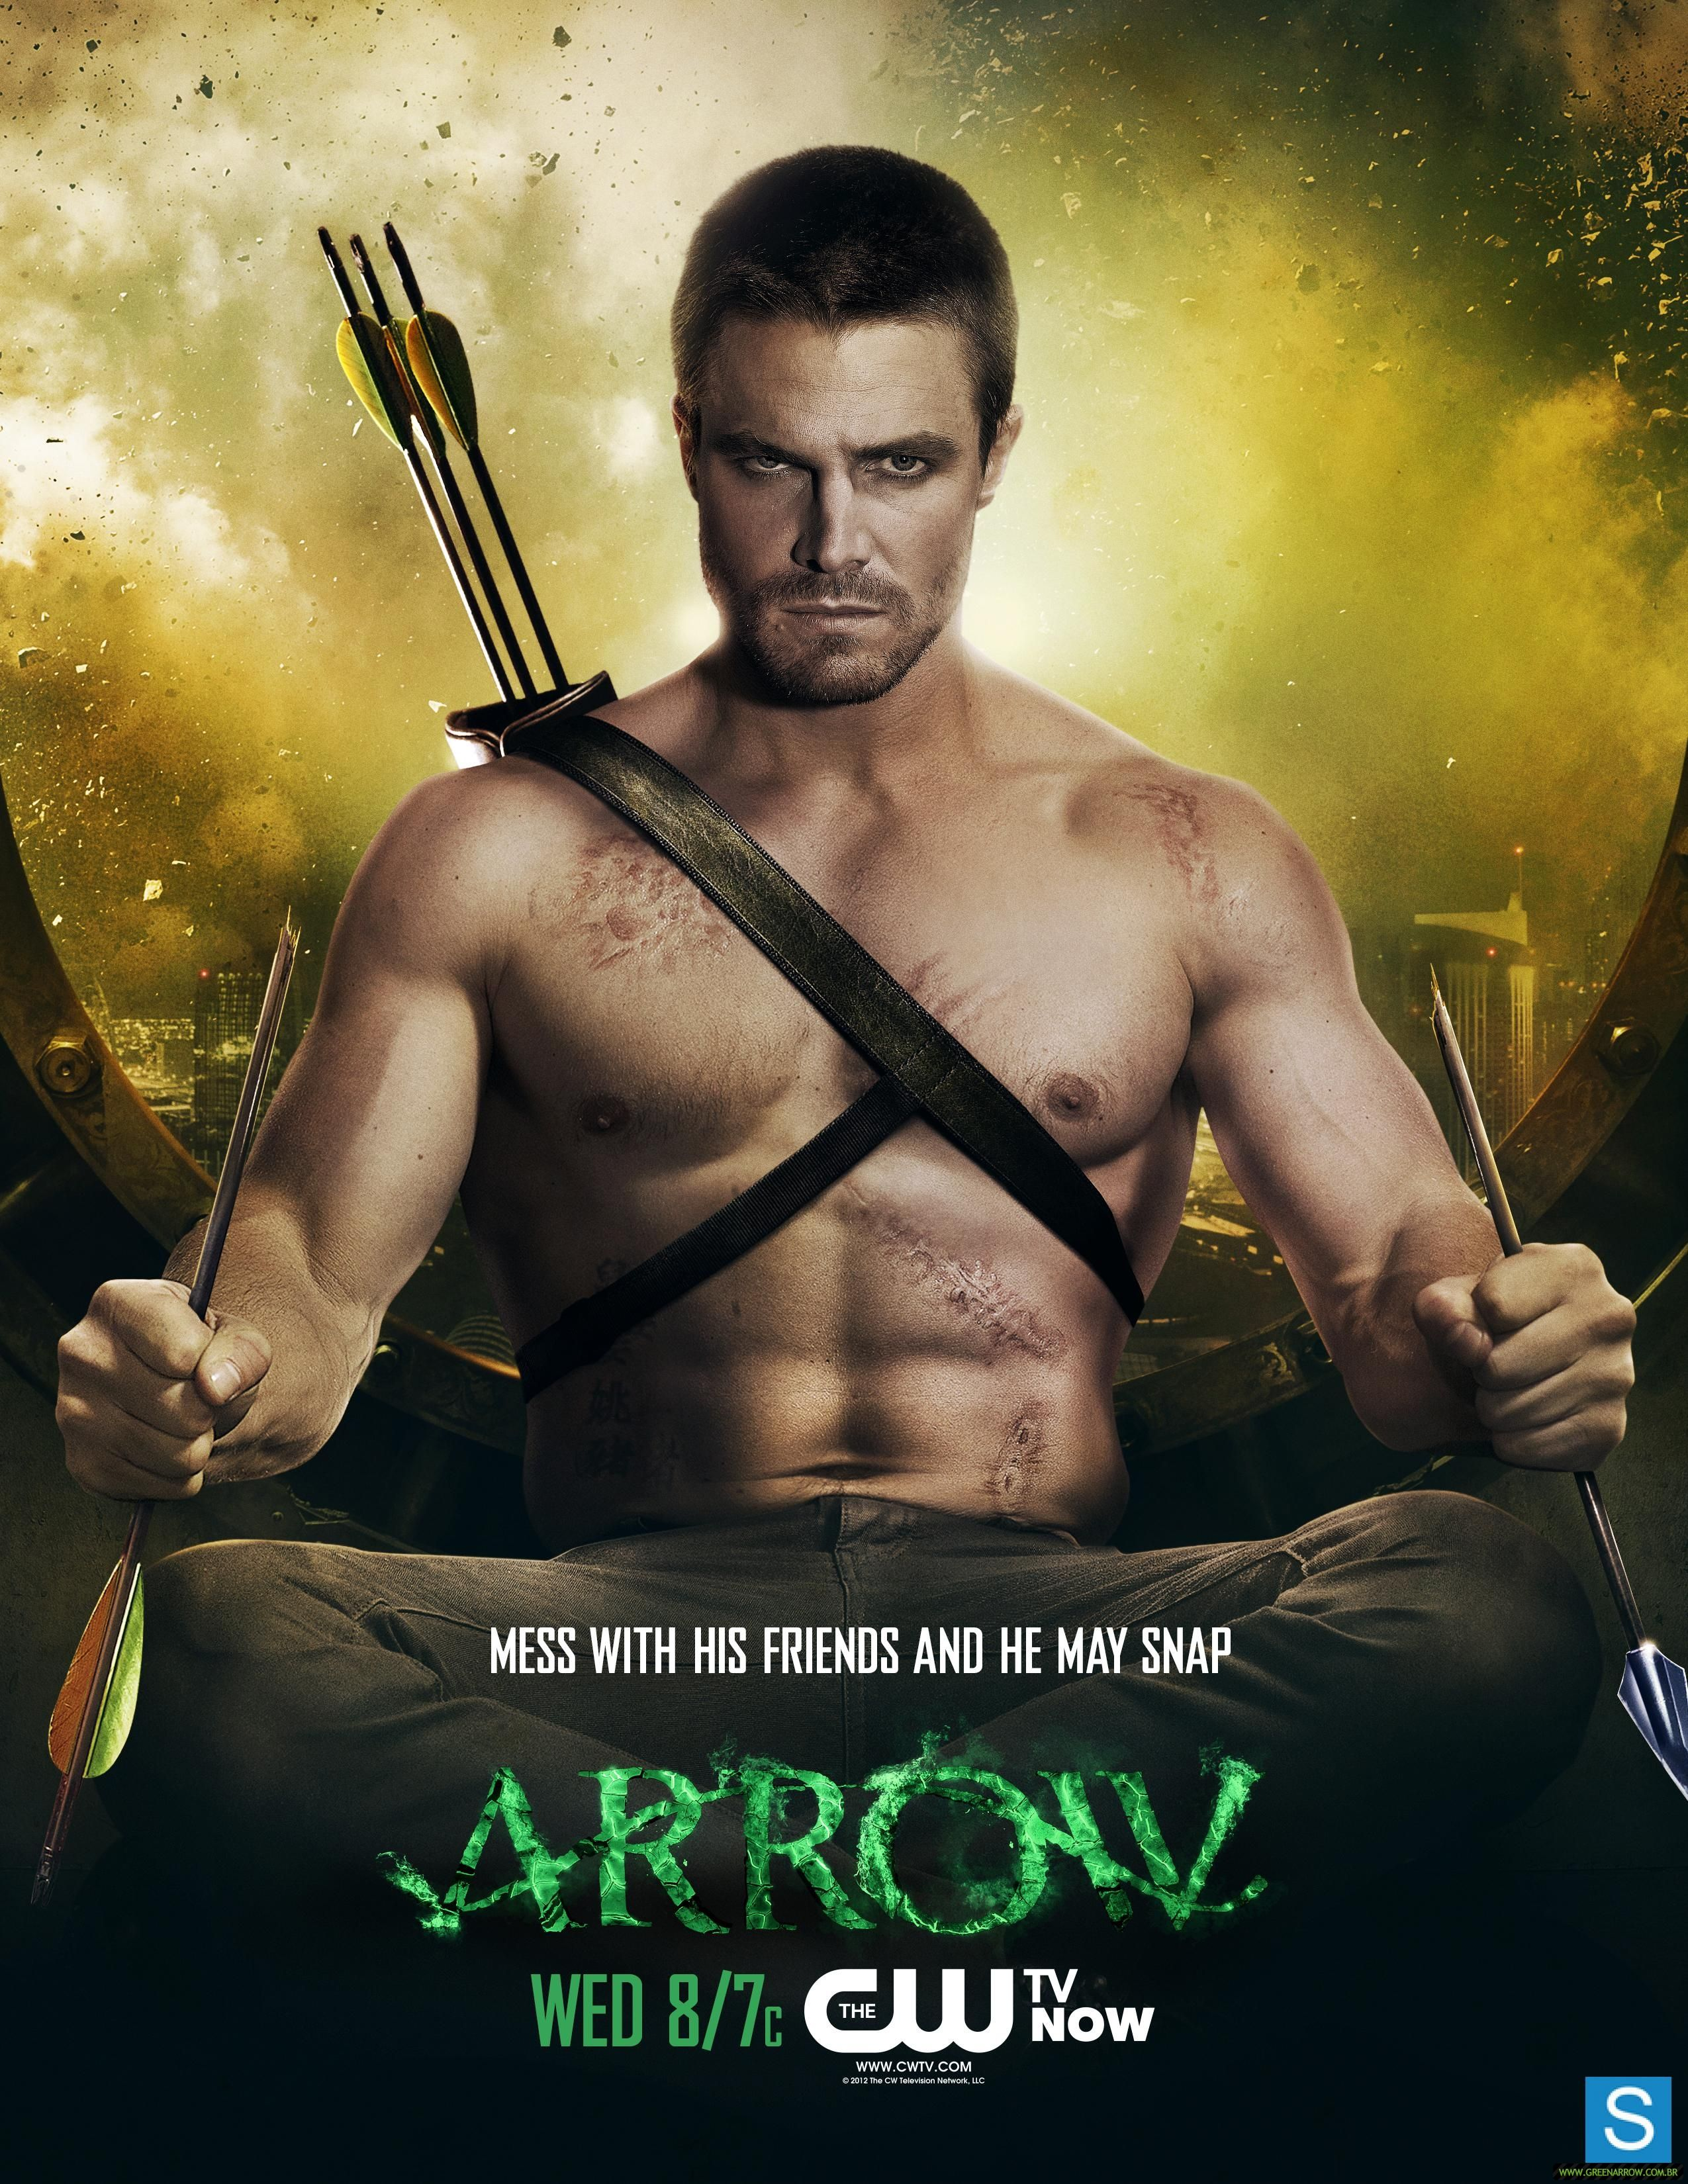 Assistir Serie Arrow 2ª Temporada Dublado Online Arrow Tv